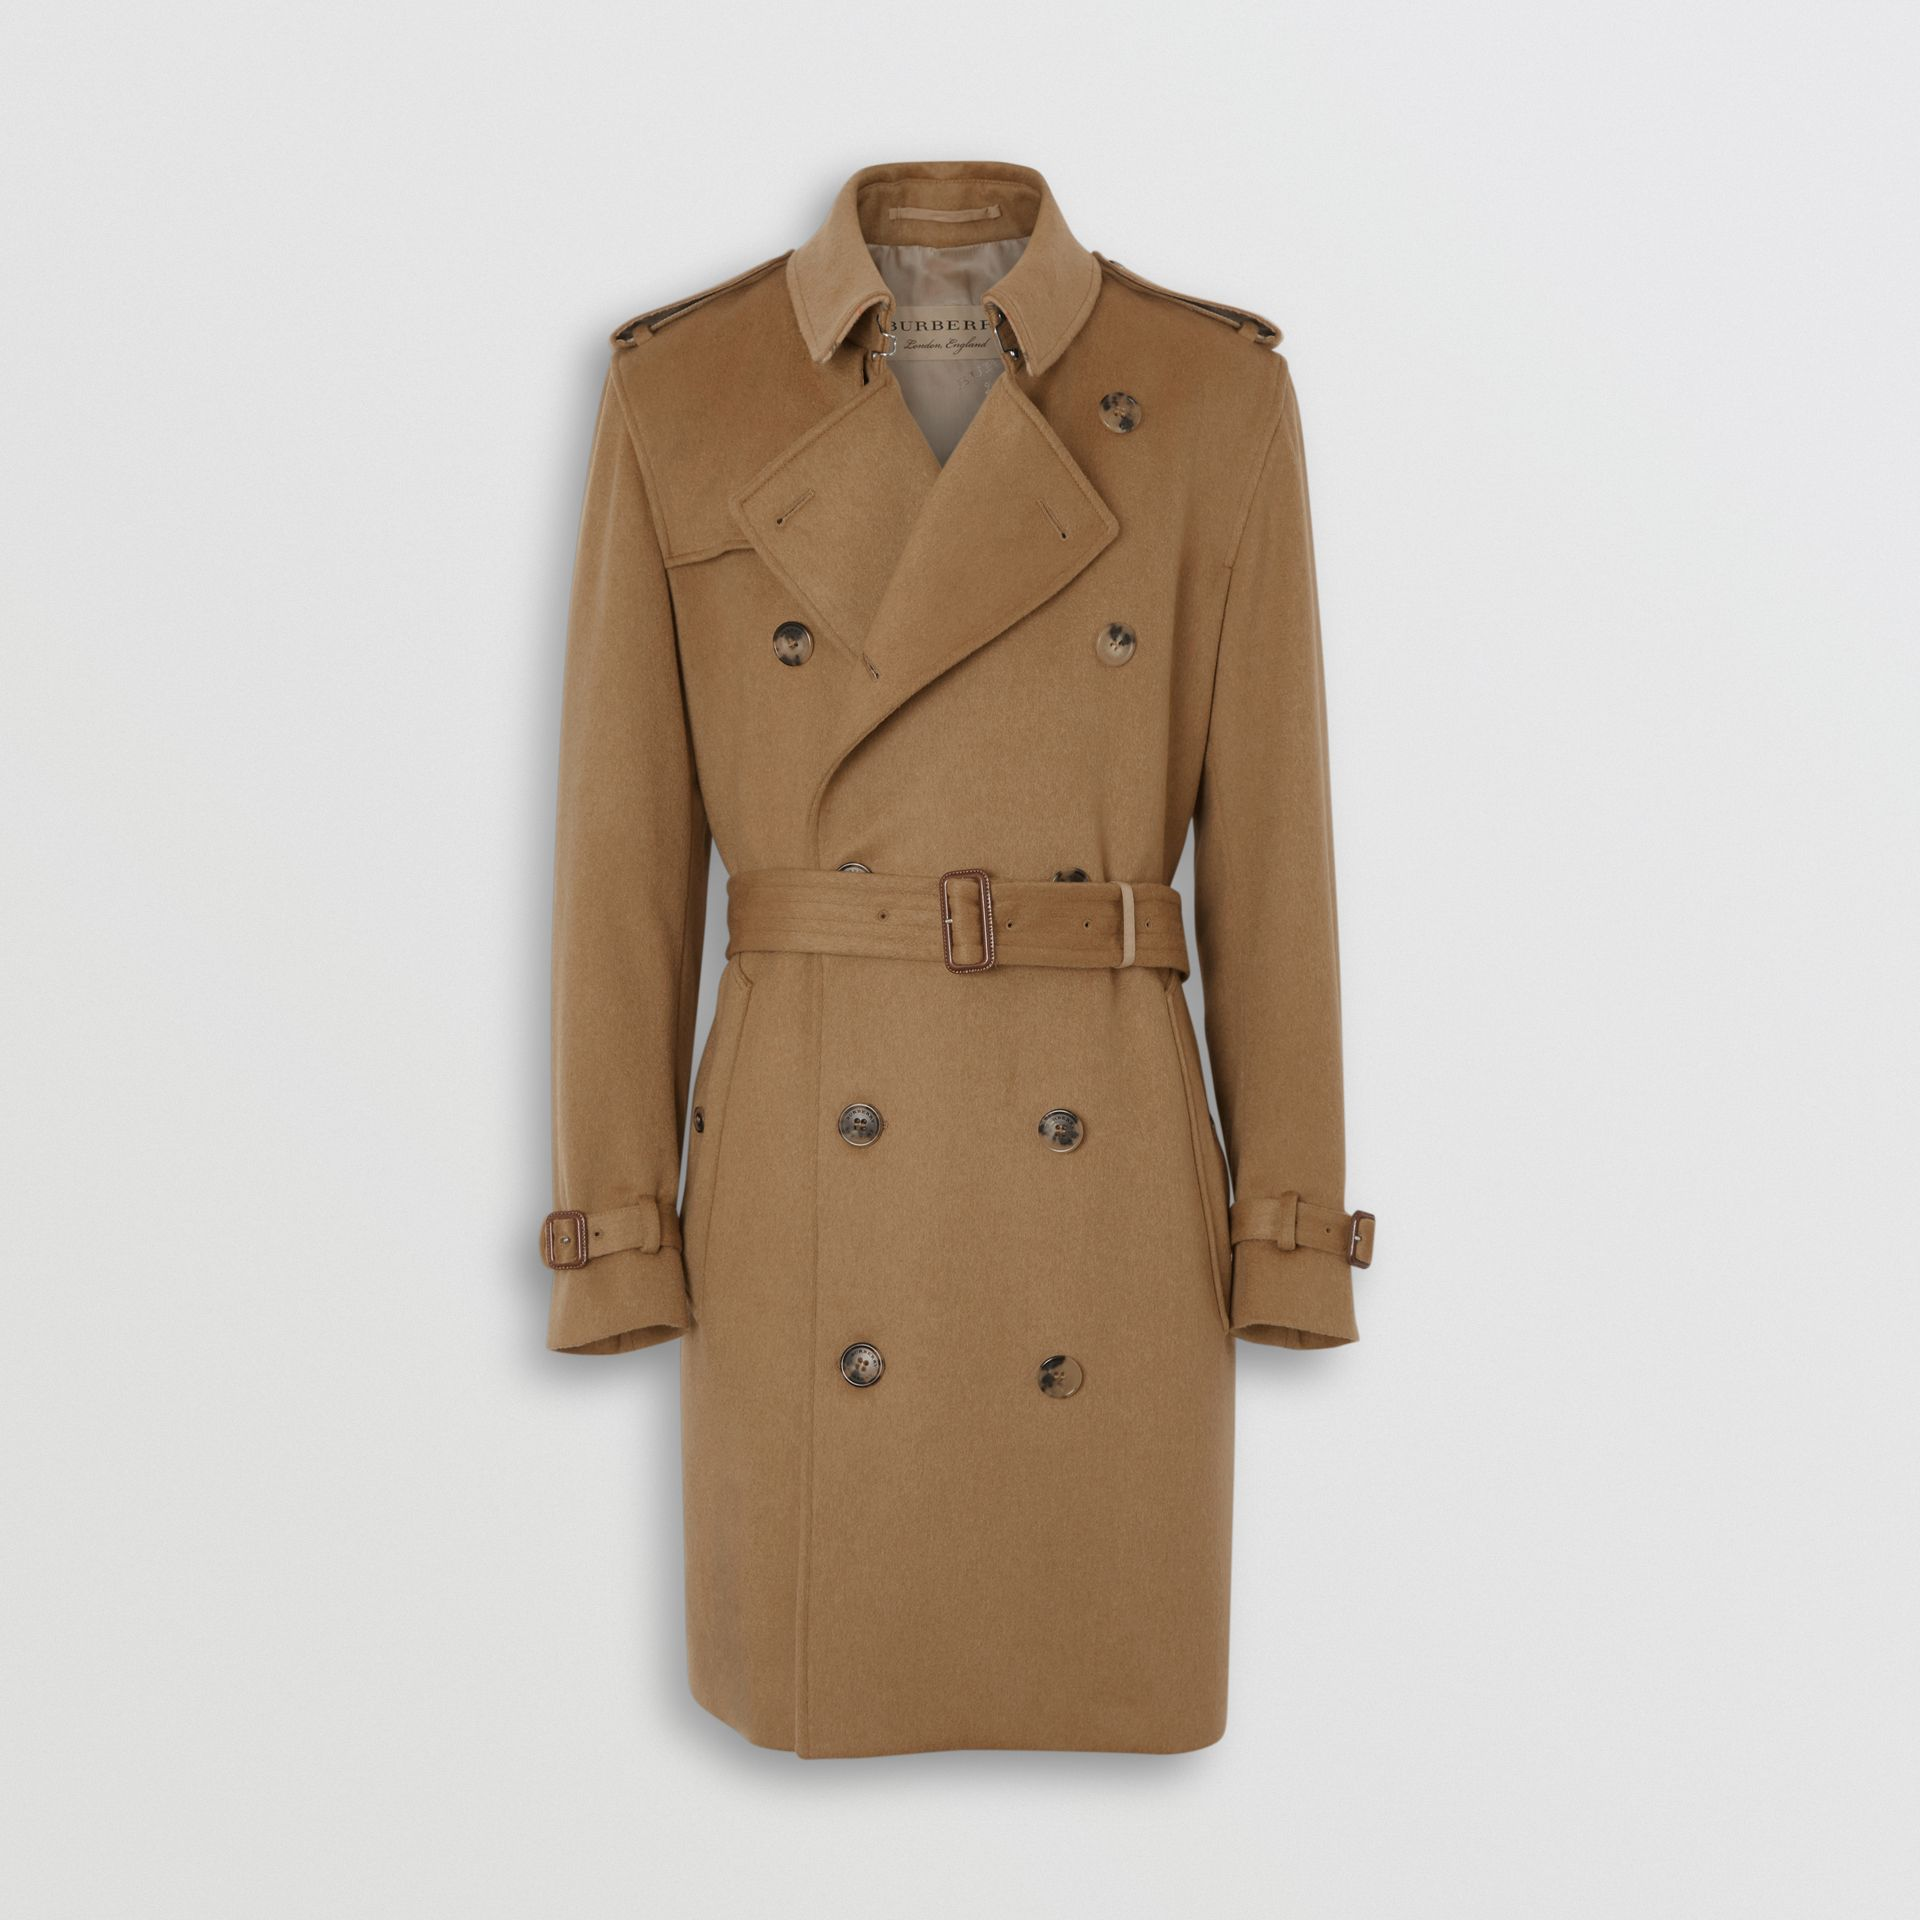 Cashmere Trench Coat in Camel - Men | Burberry United Kingdom - gallery image 3